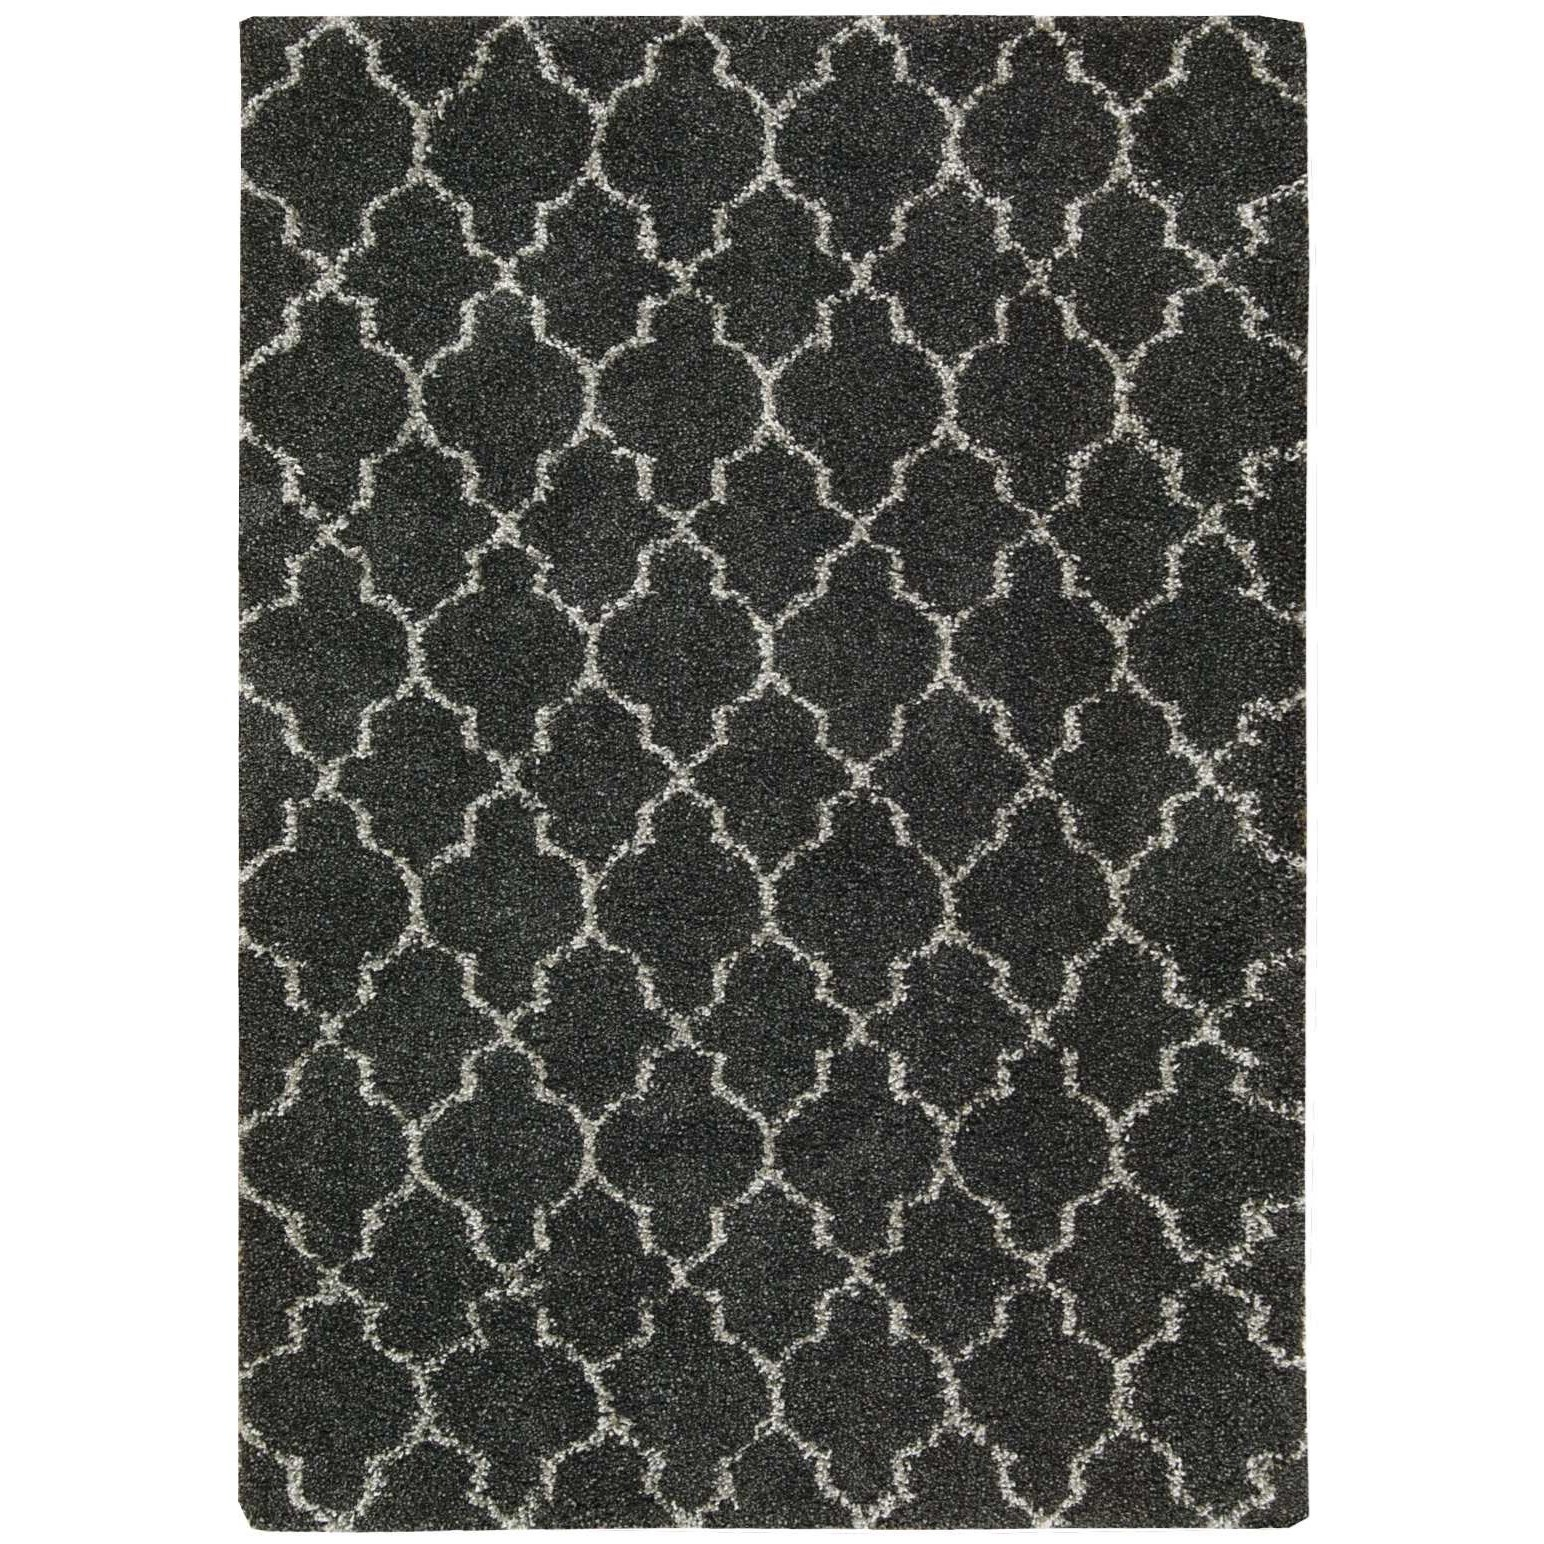 "Amore 5'3"" x 7'5"" Charcoal Rectangle Rug by Nourison at Home Collections Furniture"